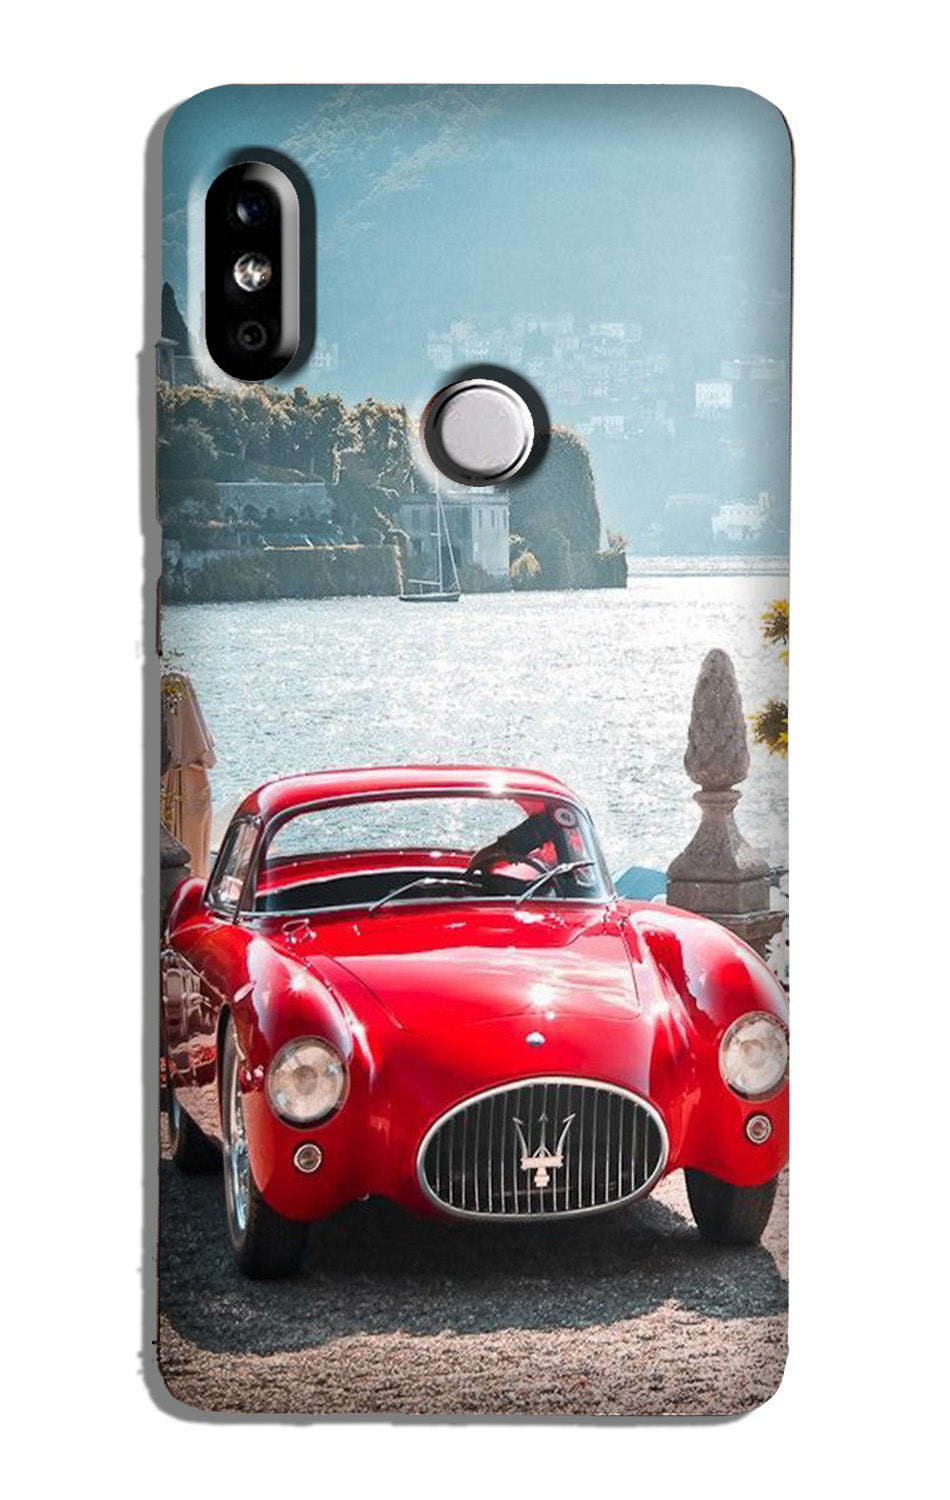 Vintage Car Case for Redmi Note 6 Pro